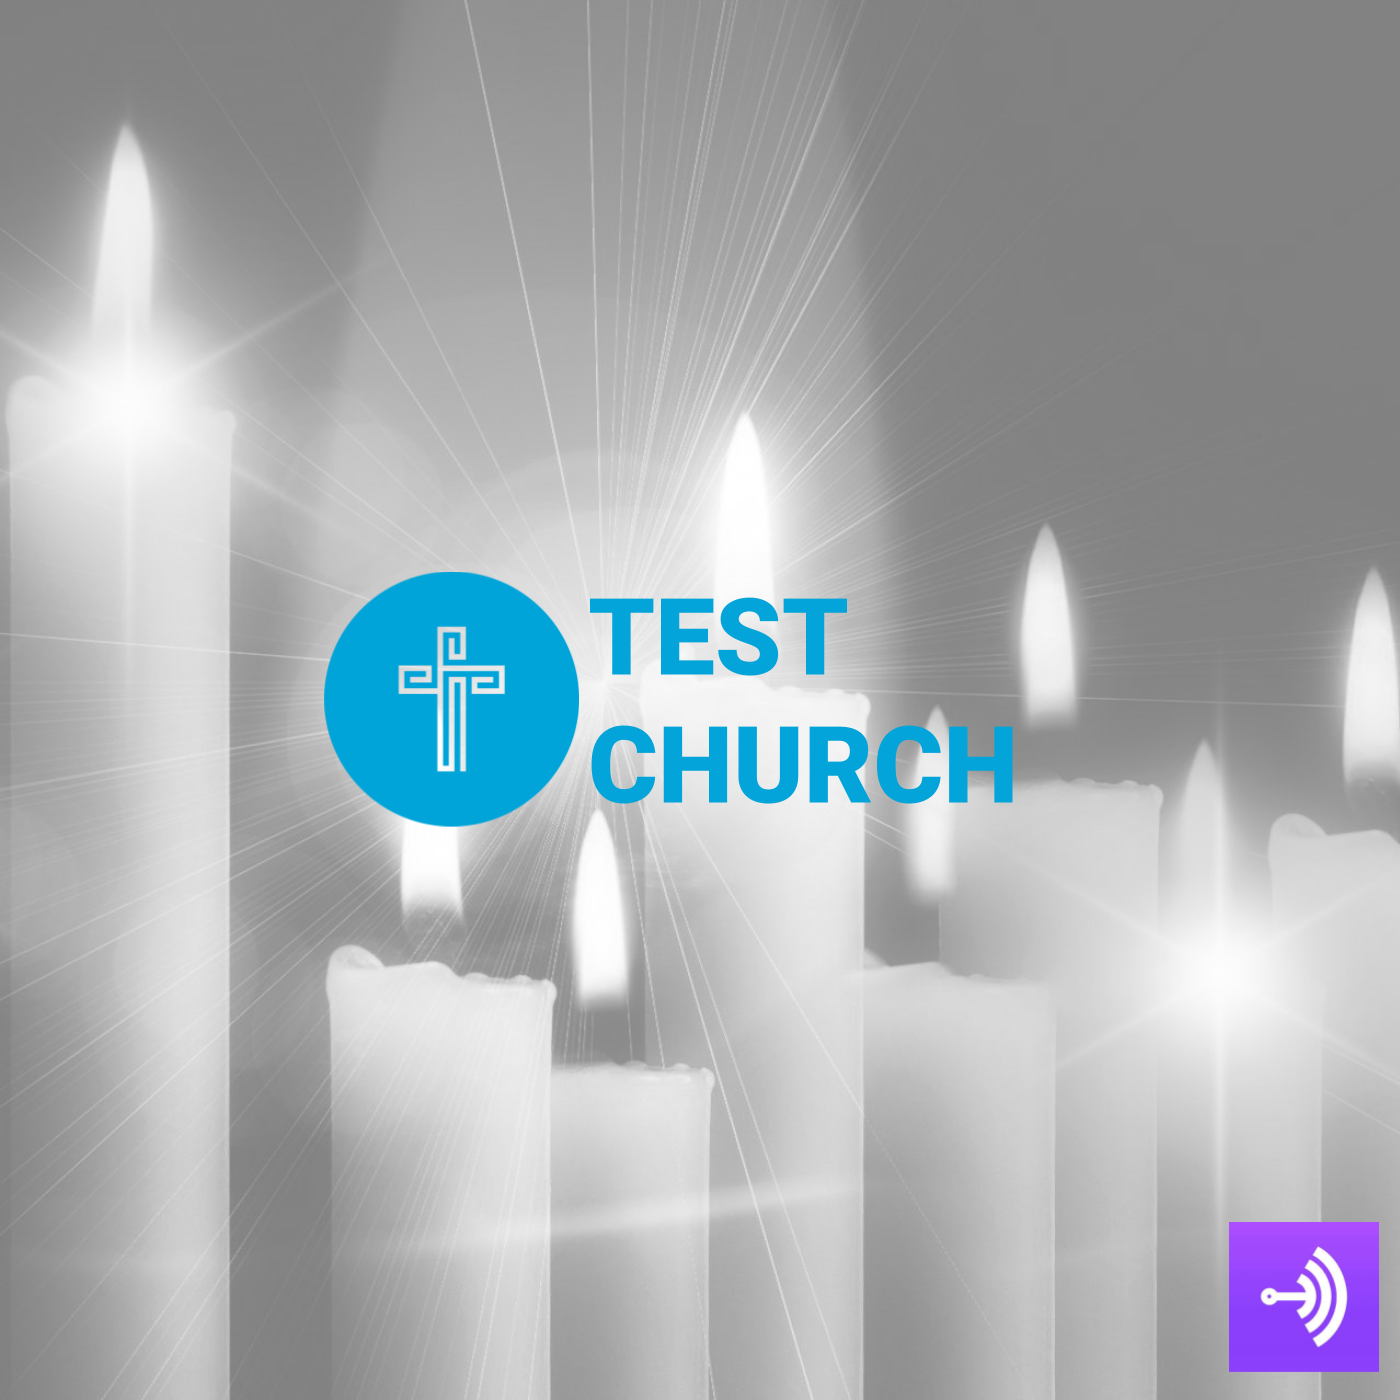 Latest Service At Test Church